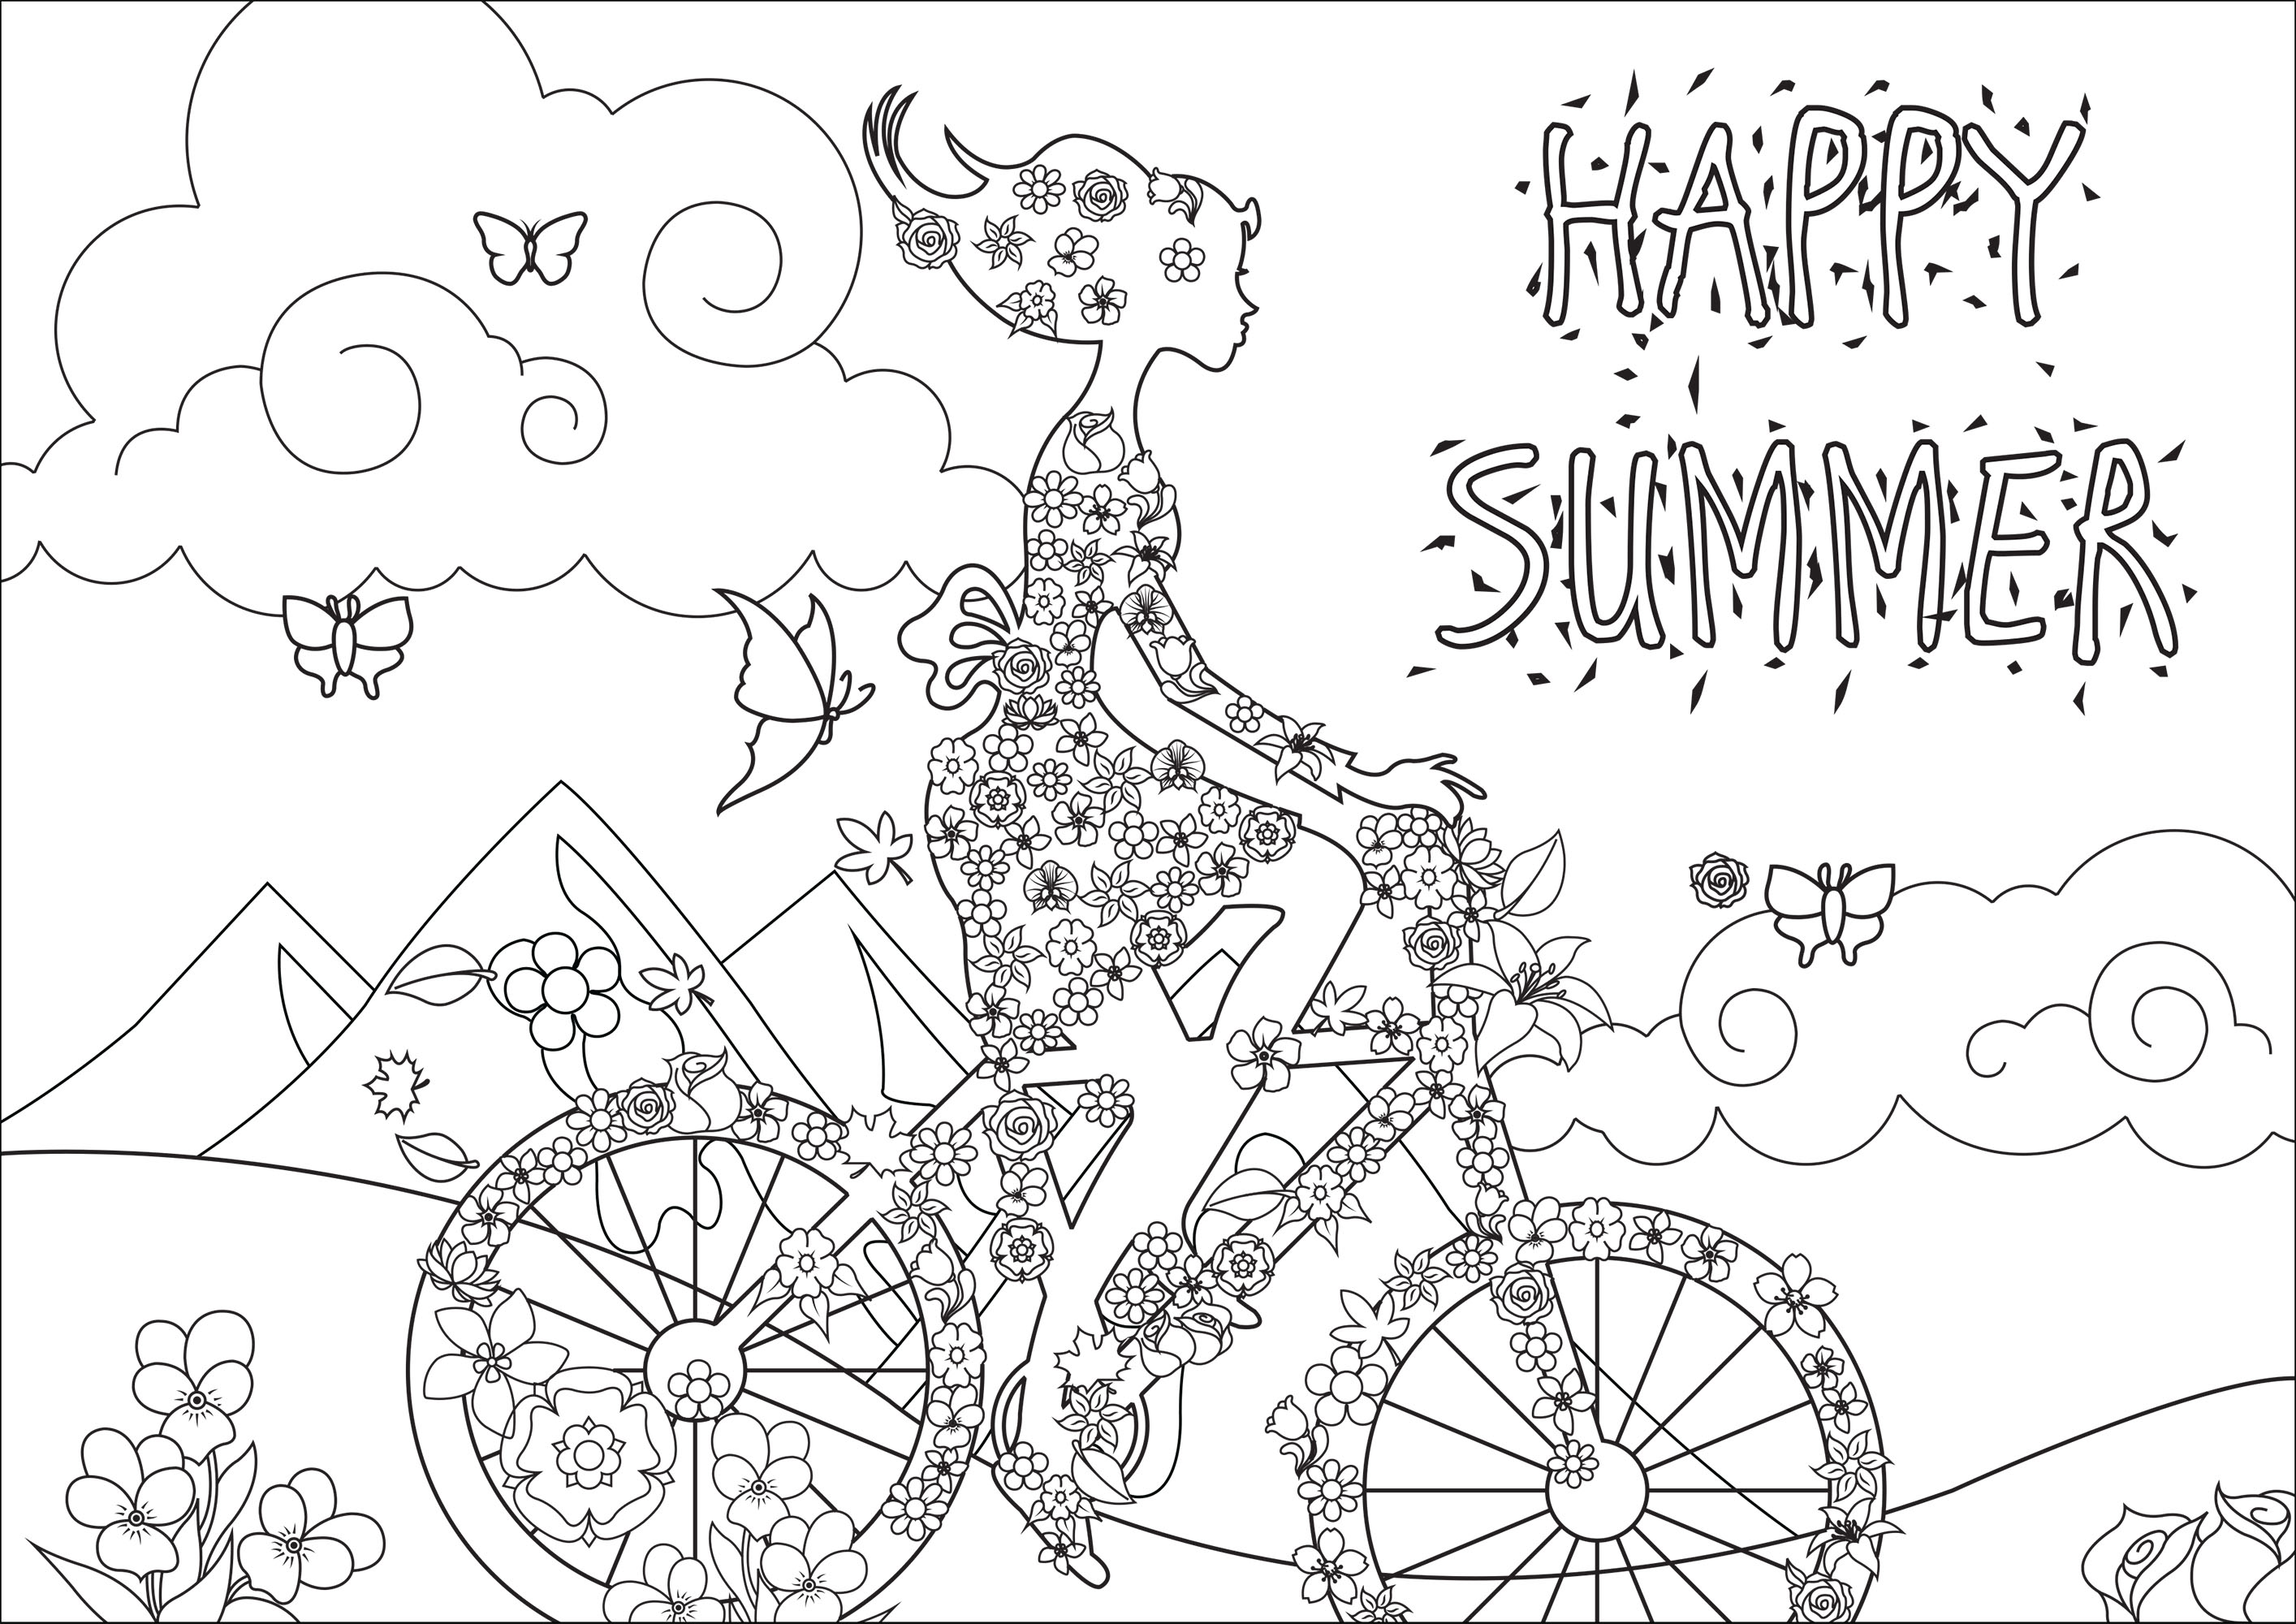 Happy Summer - Anti stress Adult Coloring Pages